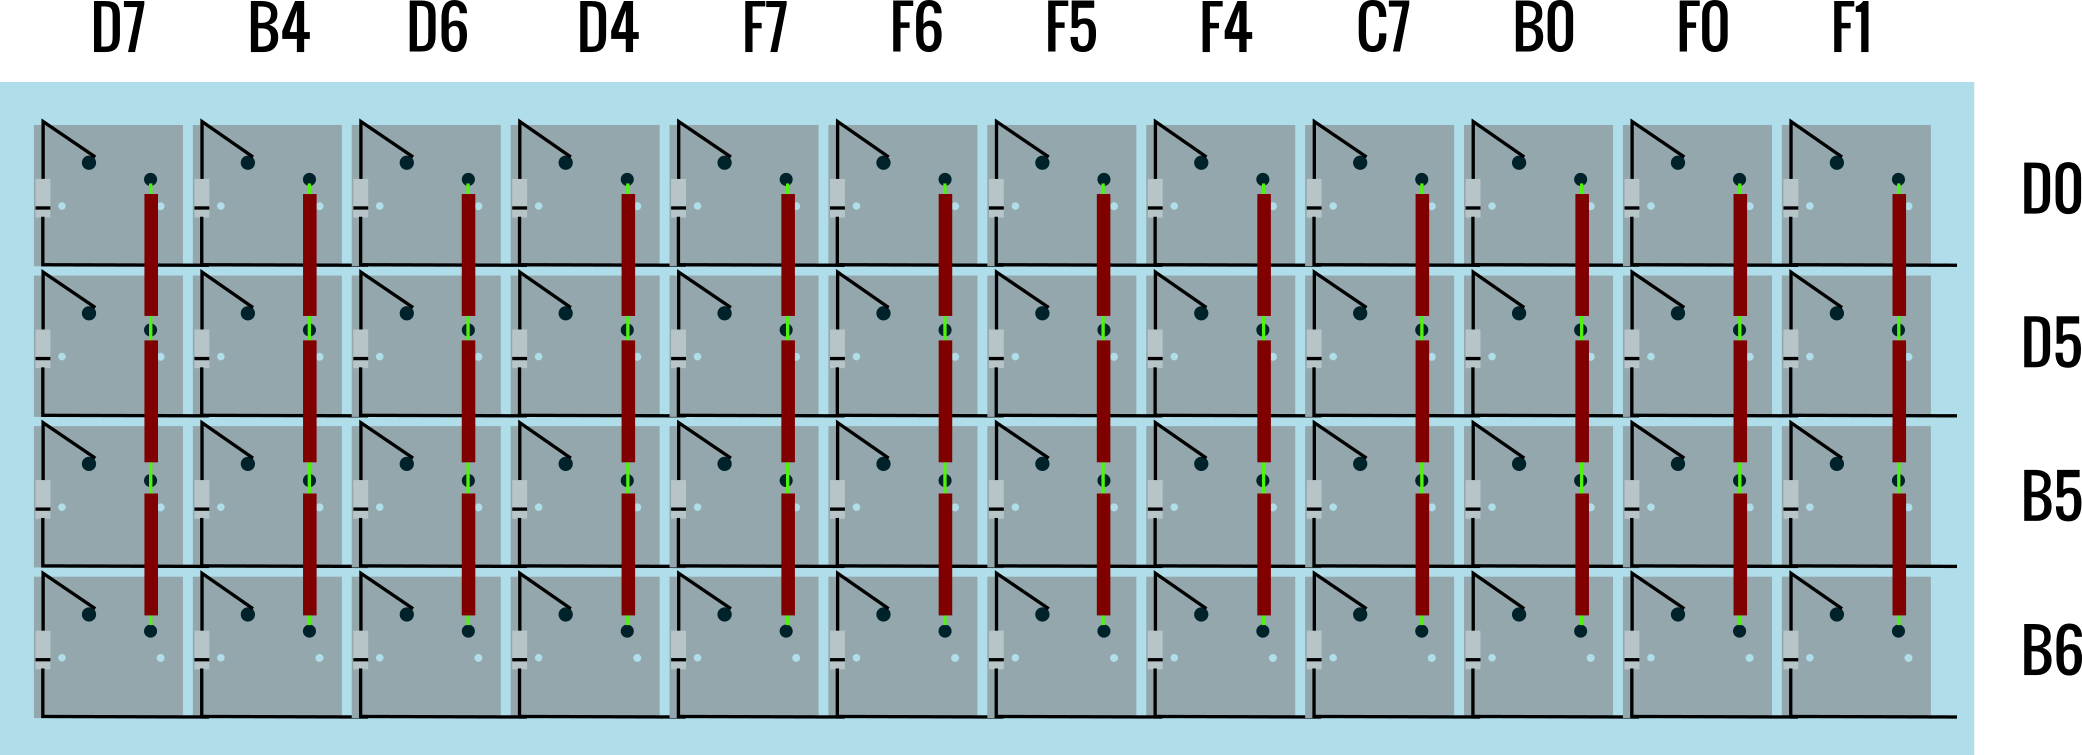 mechanical keyboard wiring diagram ford alternator how to hand wire a planck matrix with column and row labels